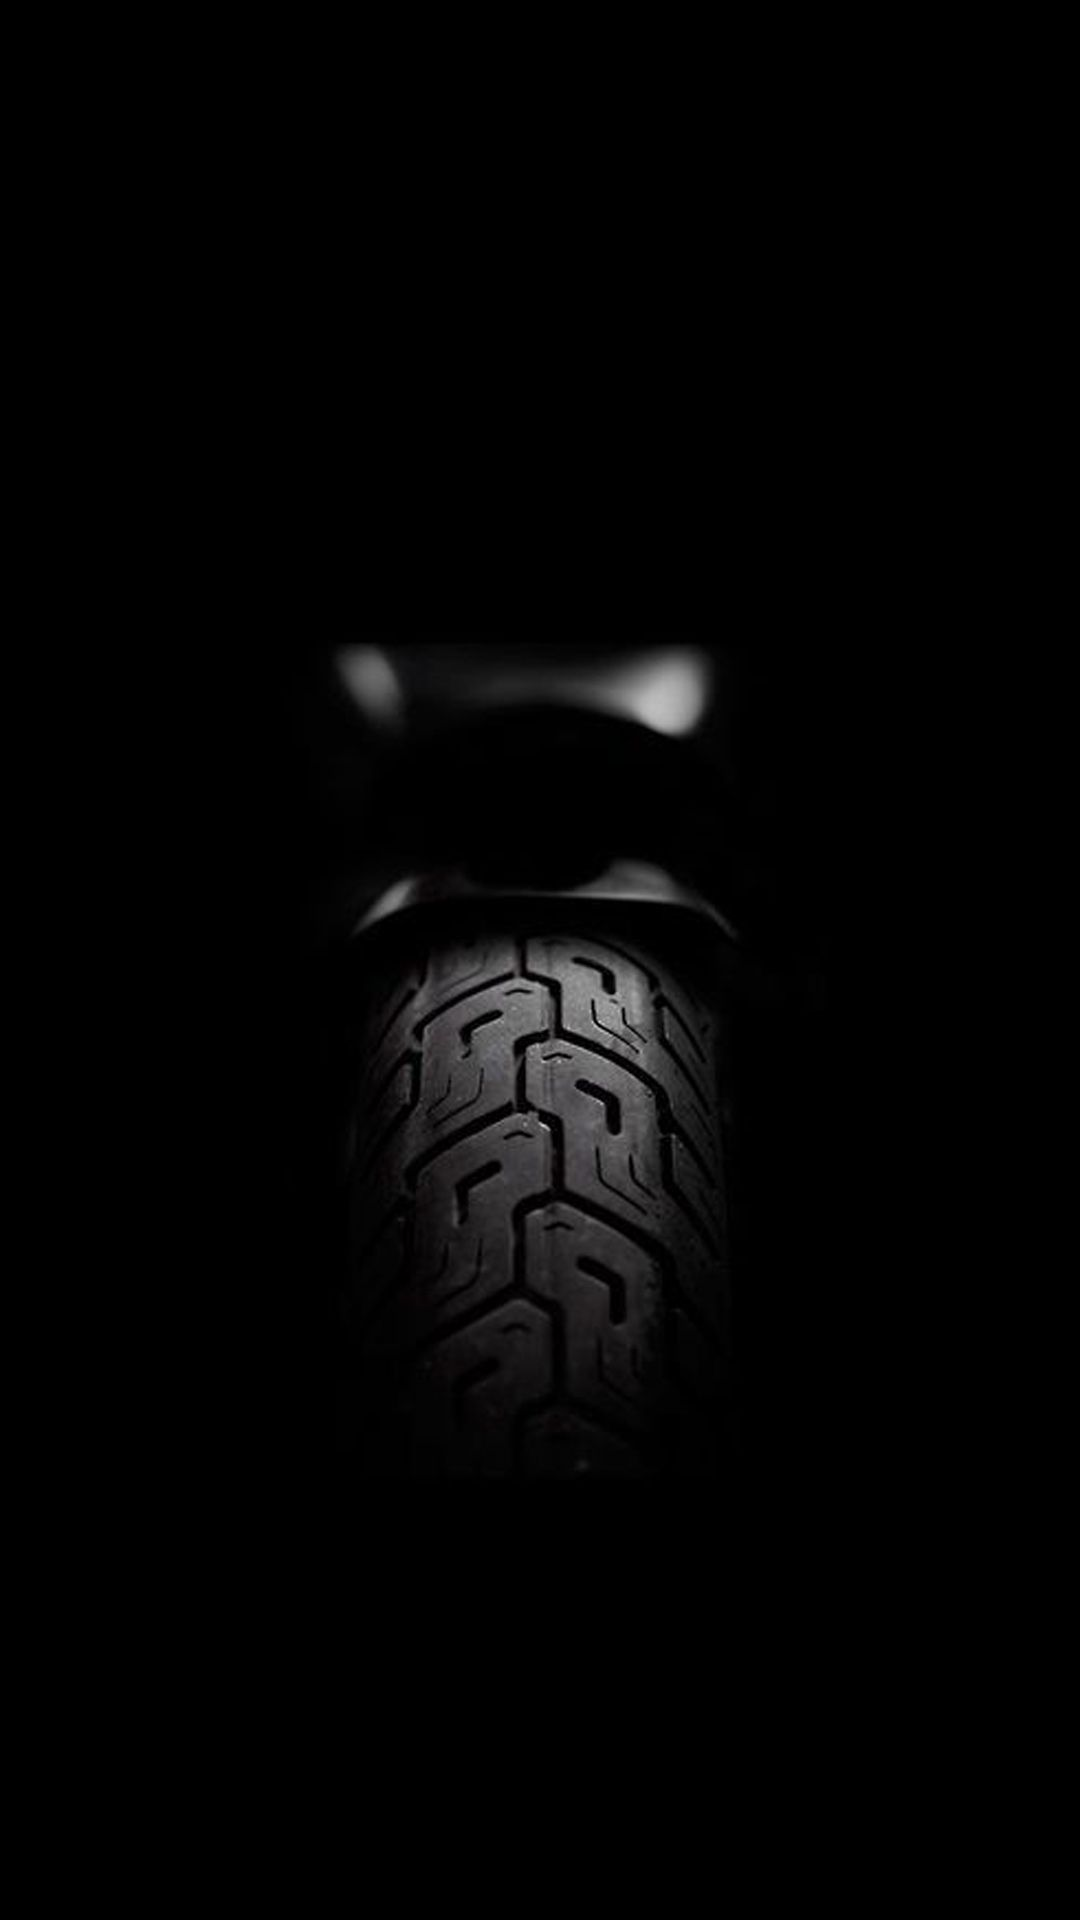 Motorcycle Rear Tire Dark iPhone 6 wallpaper